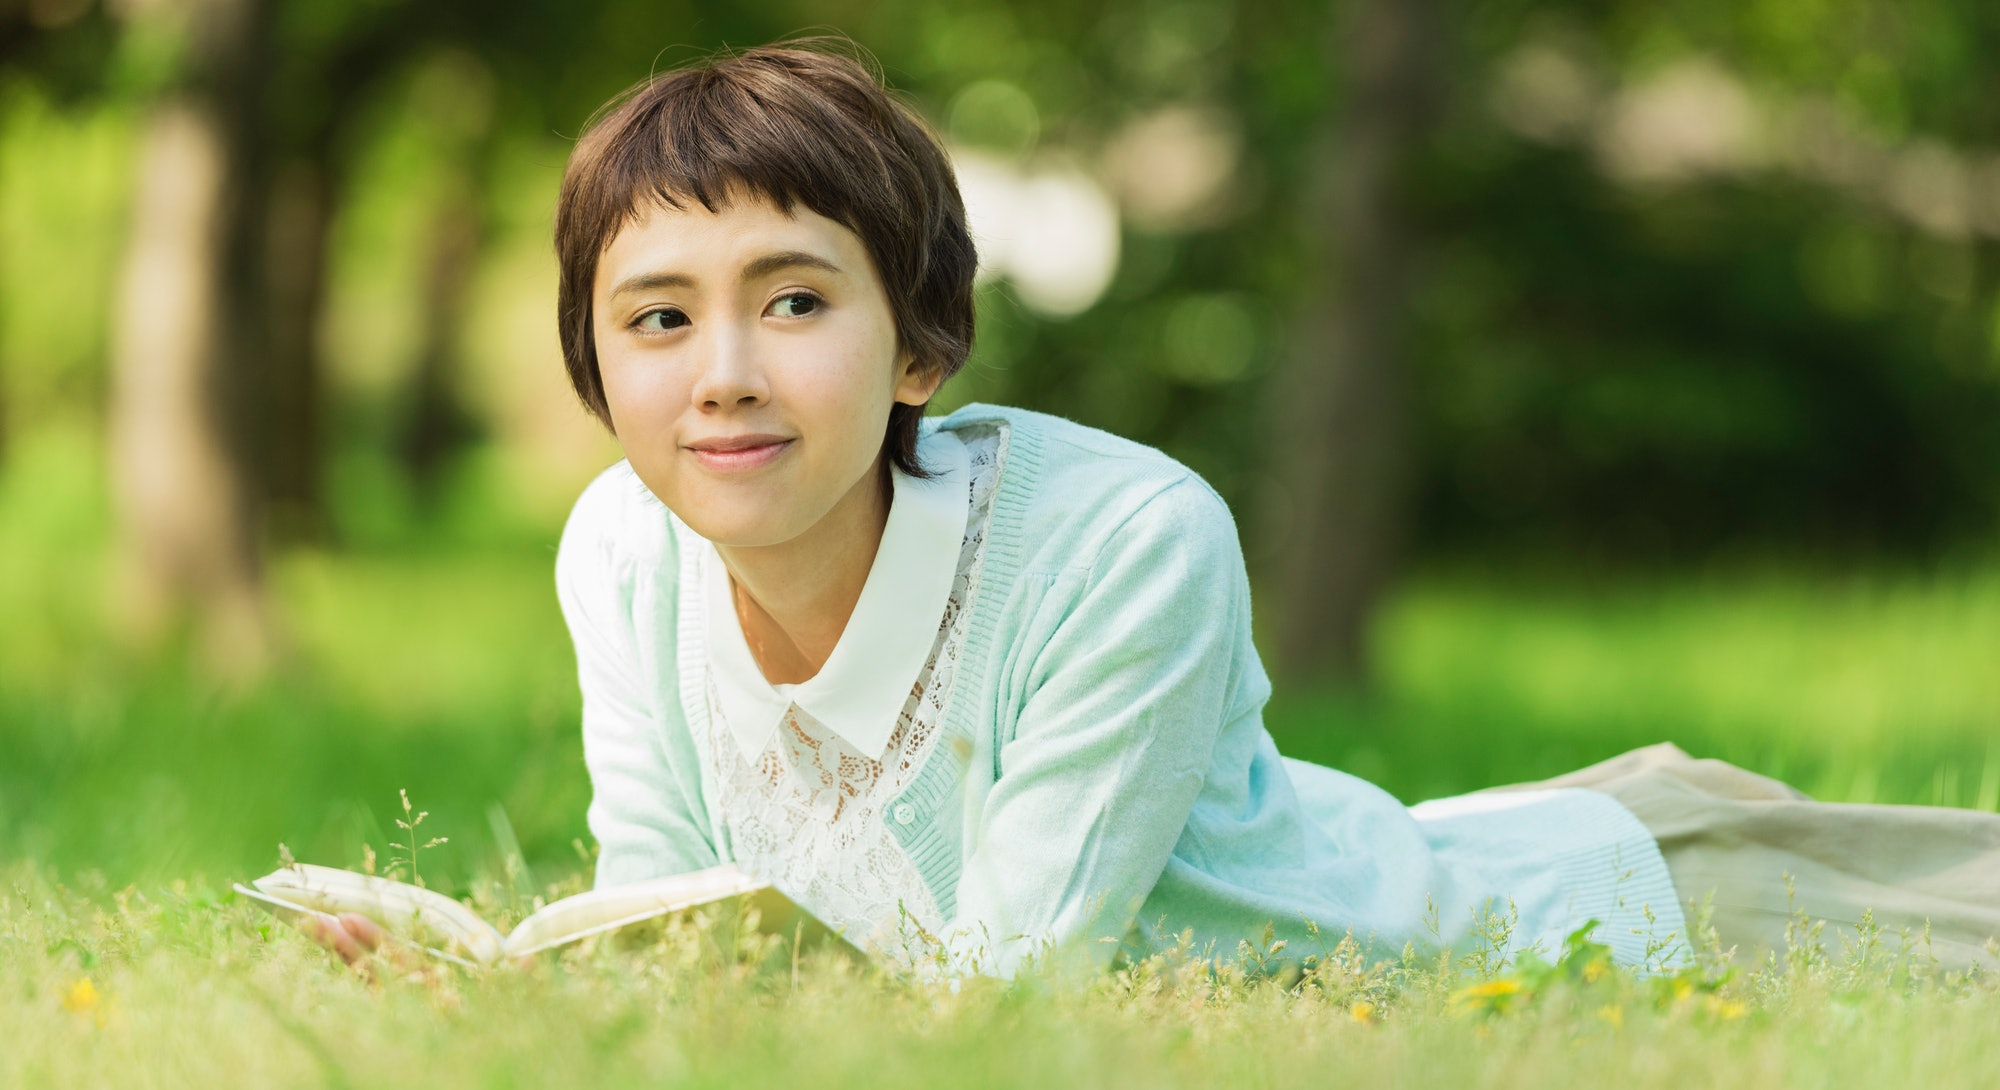 A smiling, femme Asian person with short hair lies in the grass reading a book.